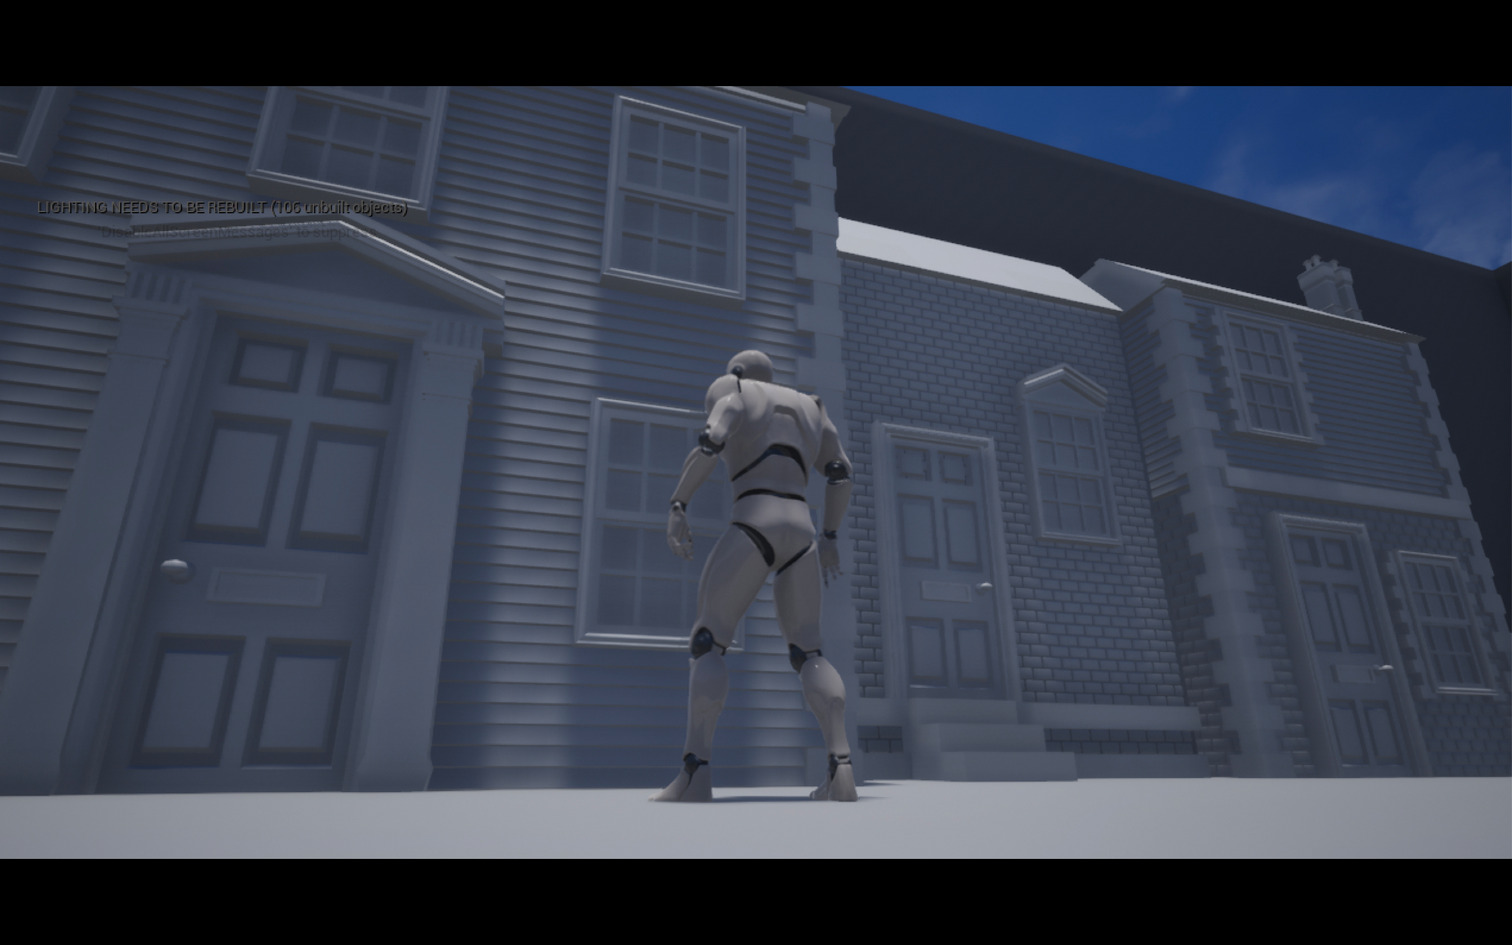 Modular architecture imported into Unreal Engine 4